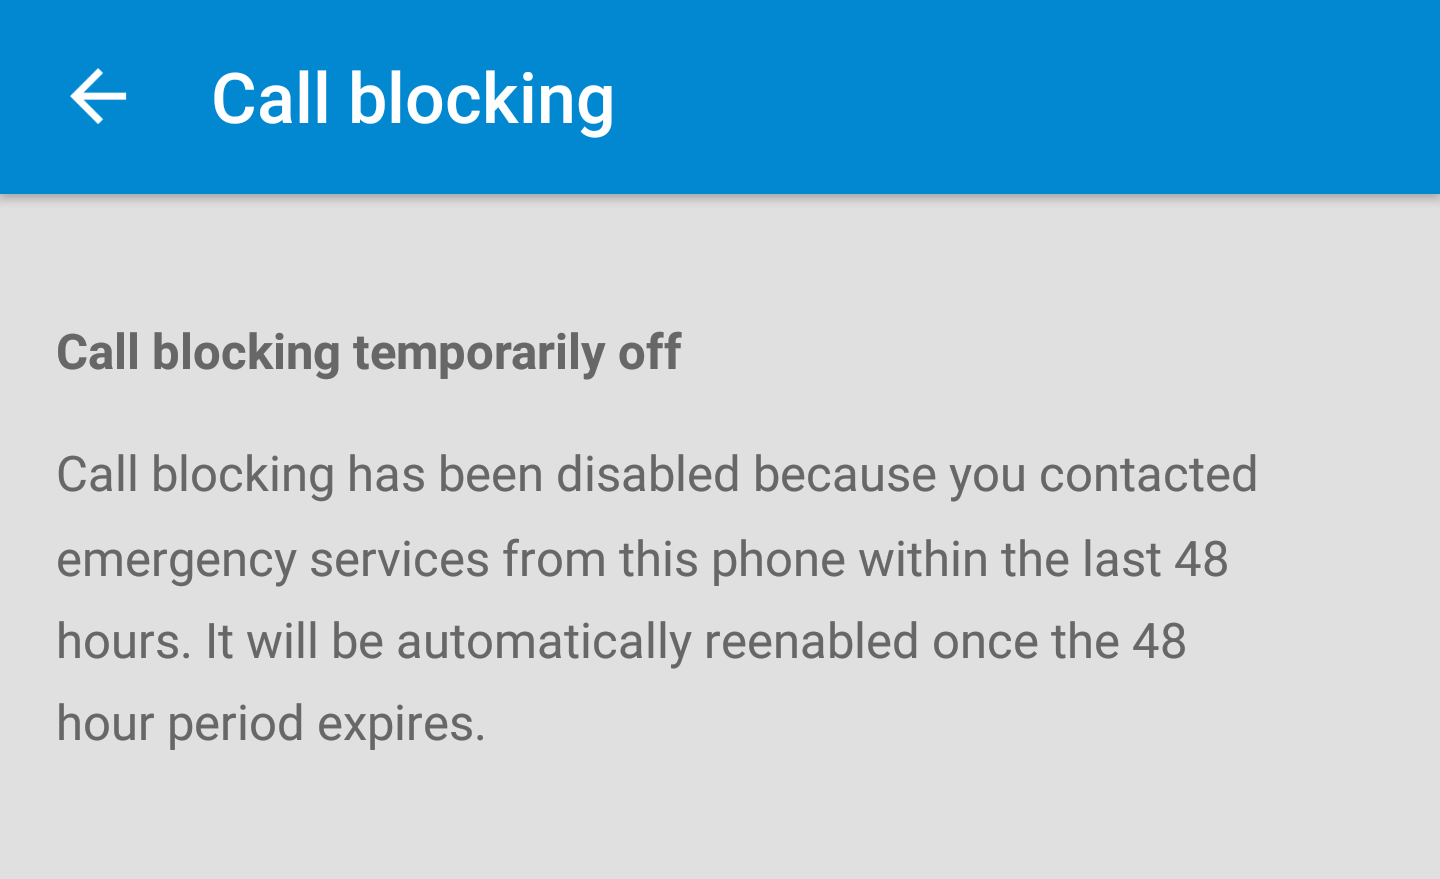 Call Blocking Is Now Automatically Disabled For 48 Hours